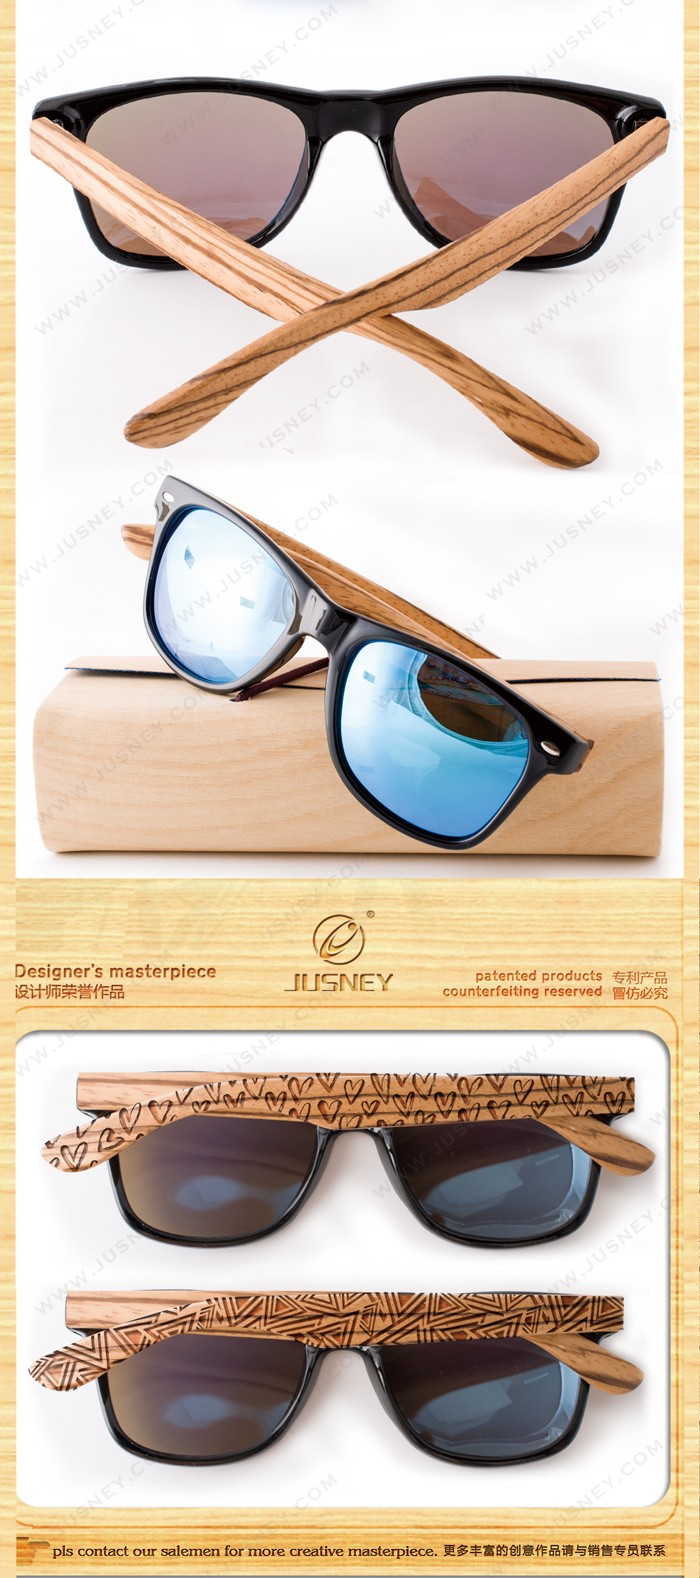 wholesale distributor STOCK wooden sunglasses Fashion resin polarized sunglasses UV 400 bamboo wood sunglasses 2018